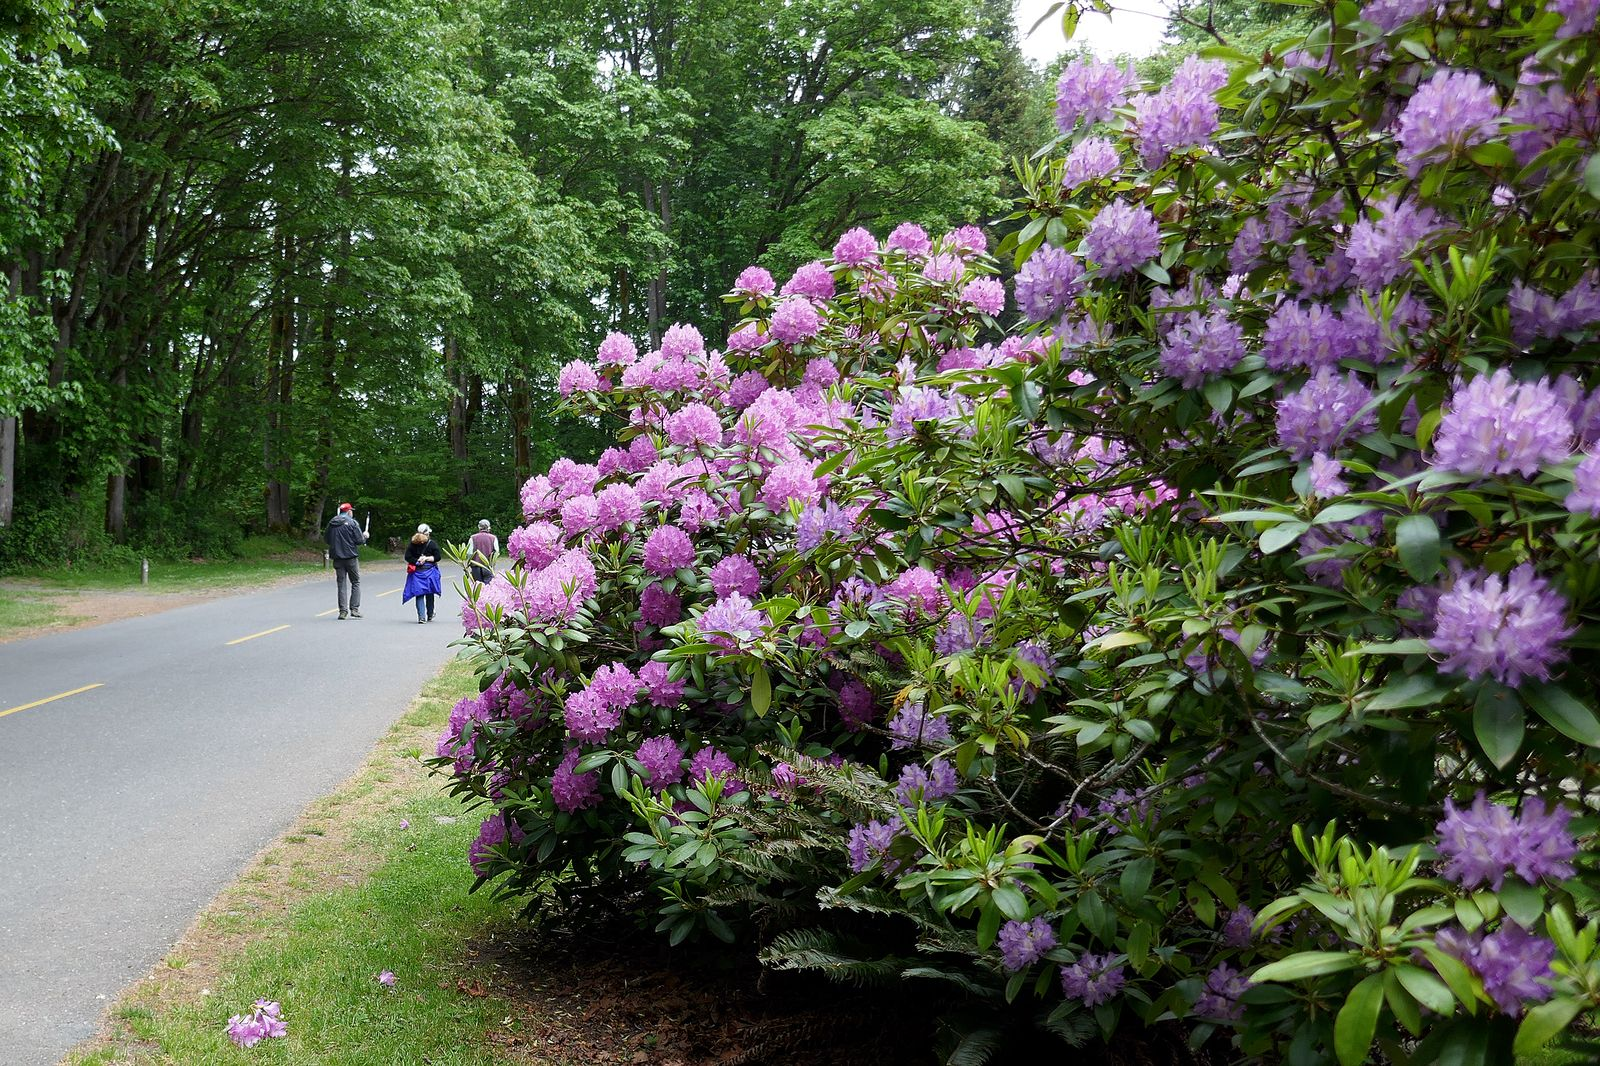 The Rhodies along the way back to the parking lot